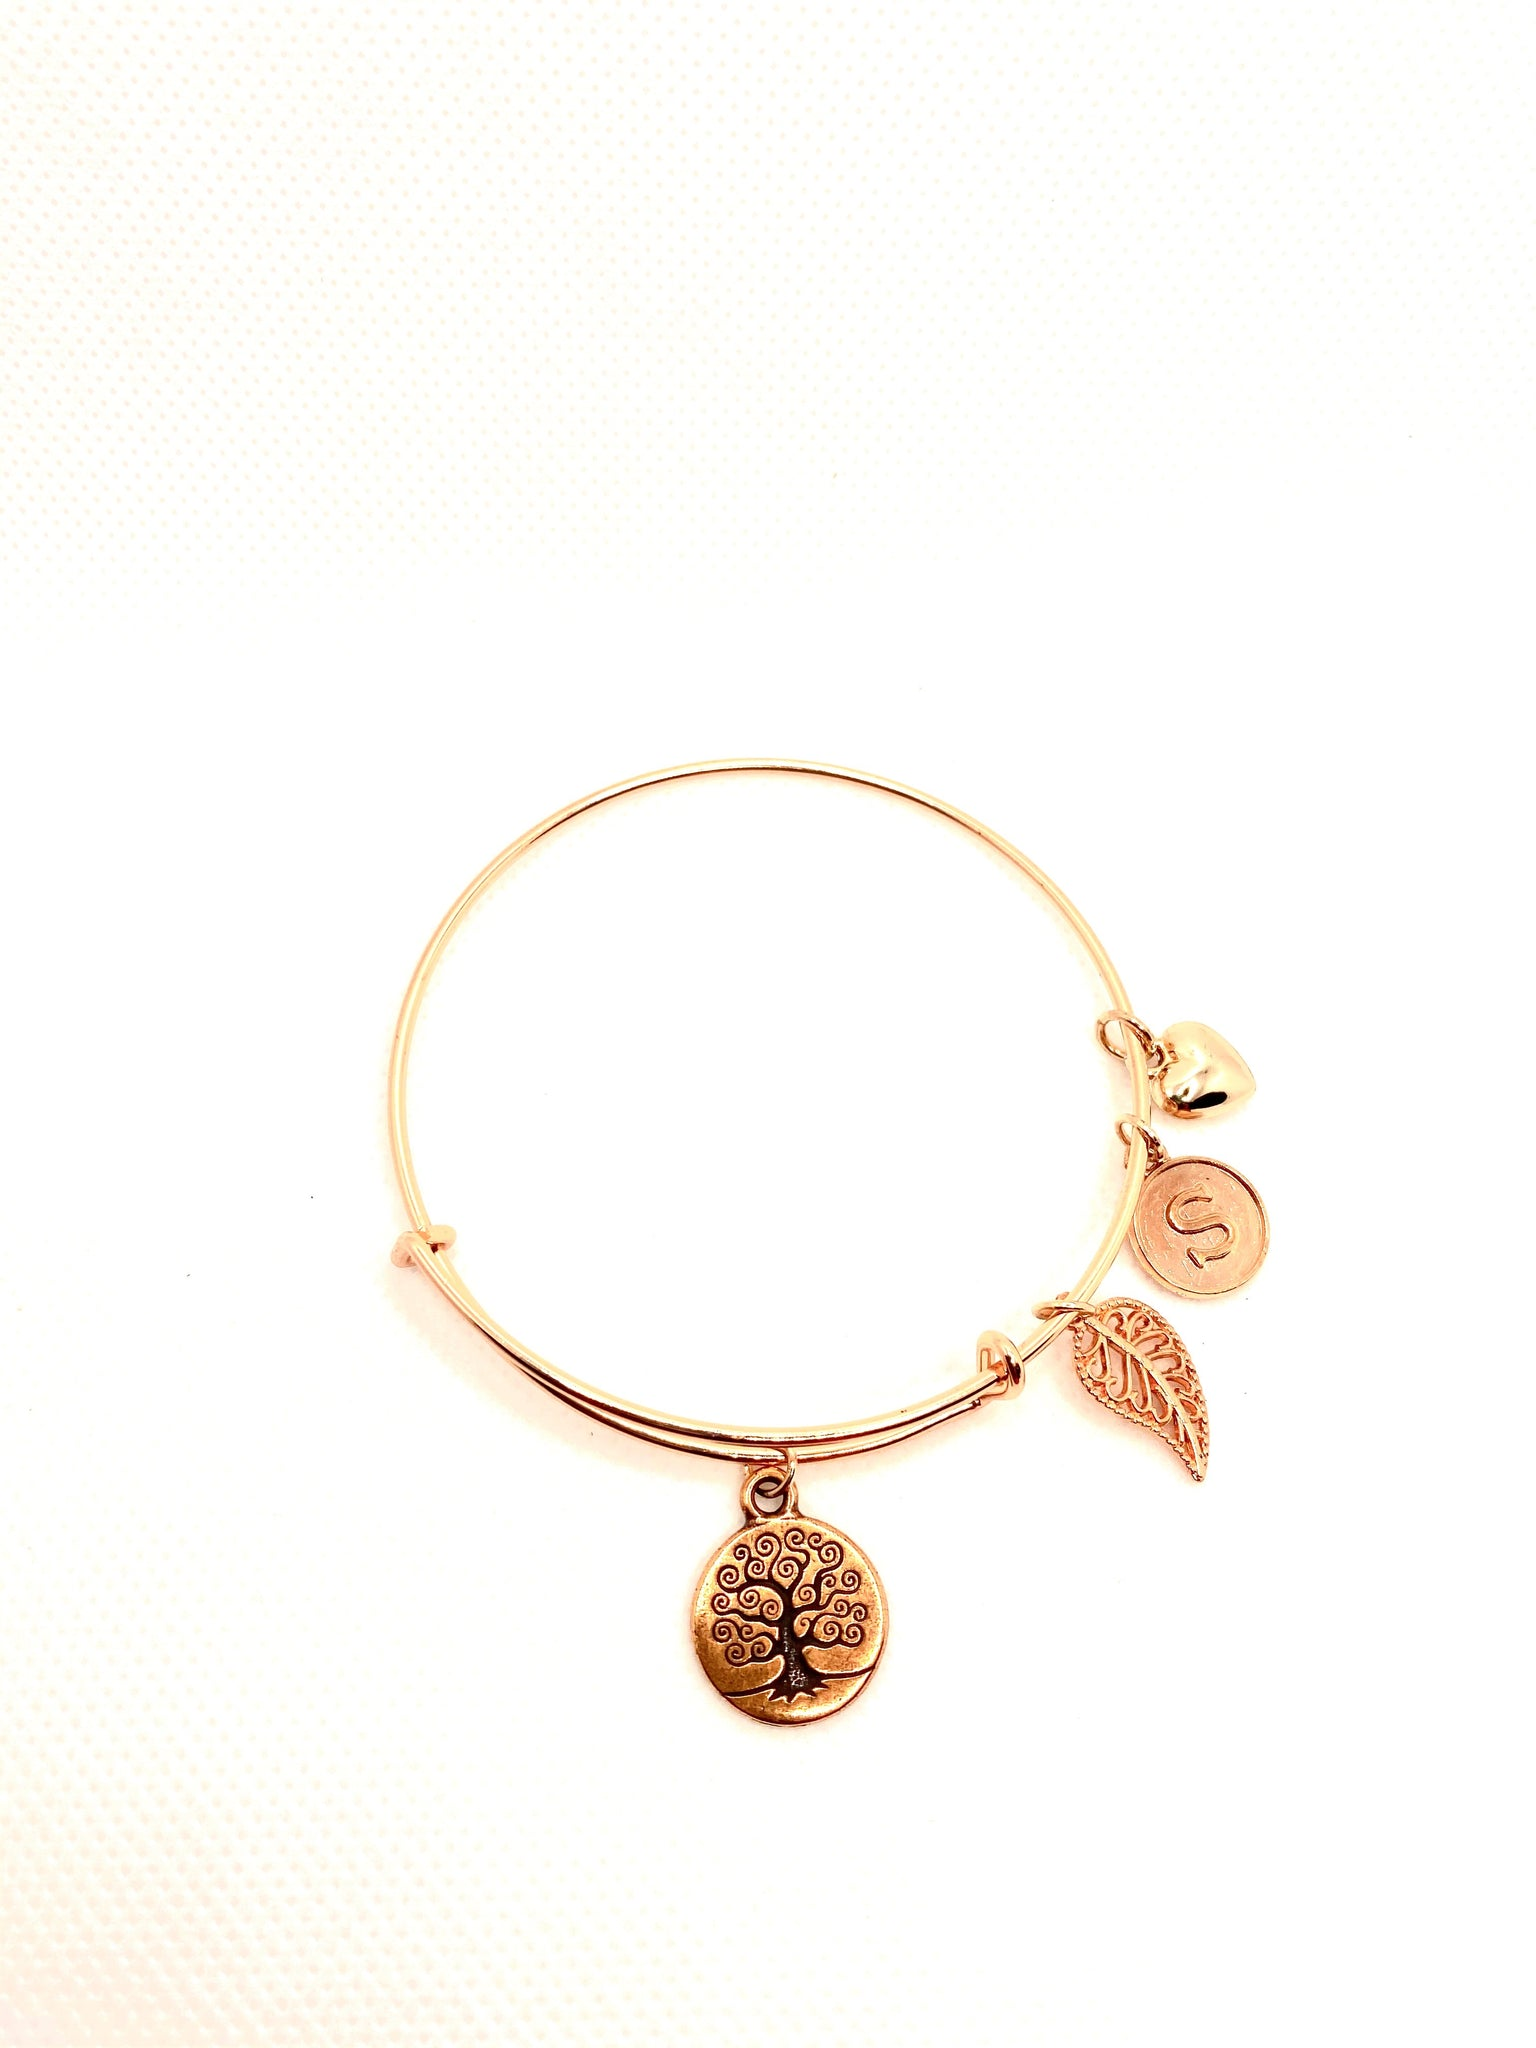 Personalized Tree of Life Rose Gold Bangle Bracelet